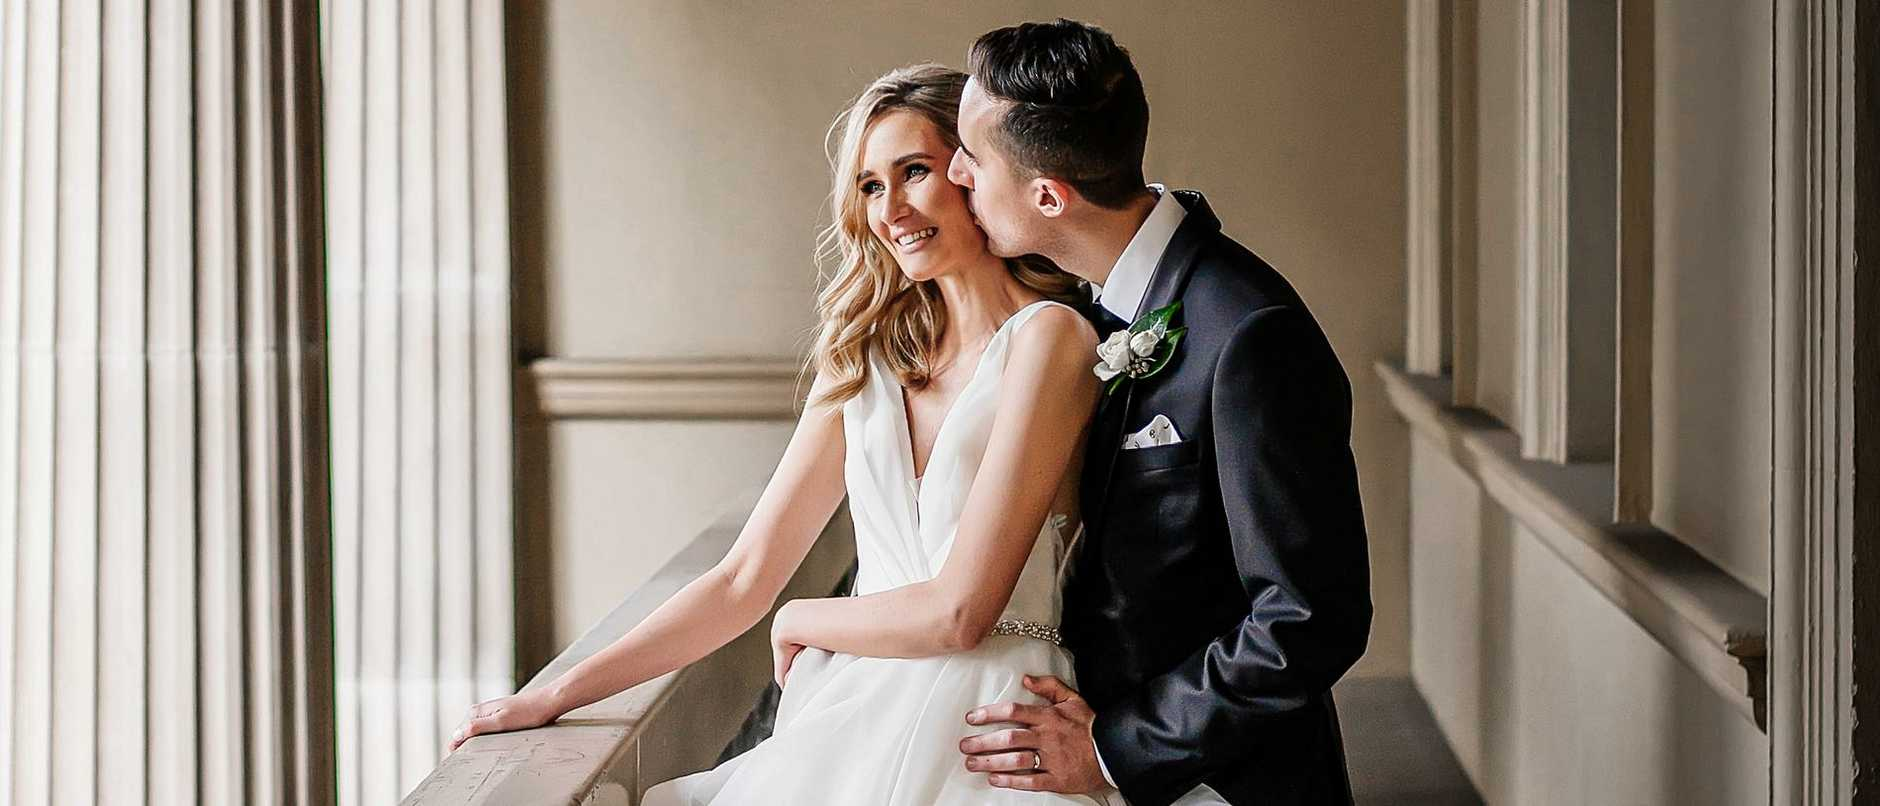 Wedding of Chloe Mulcahy and Samuel Heinrich. Picture: Evernew Photography